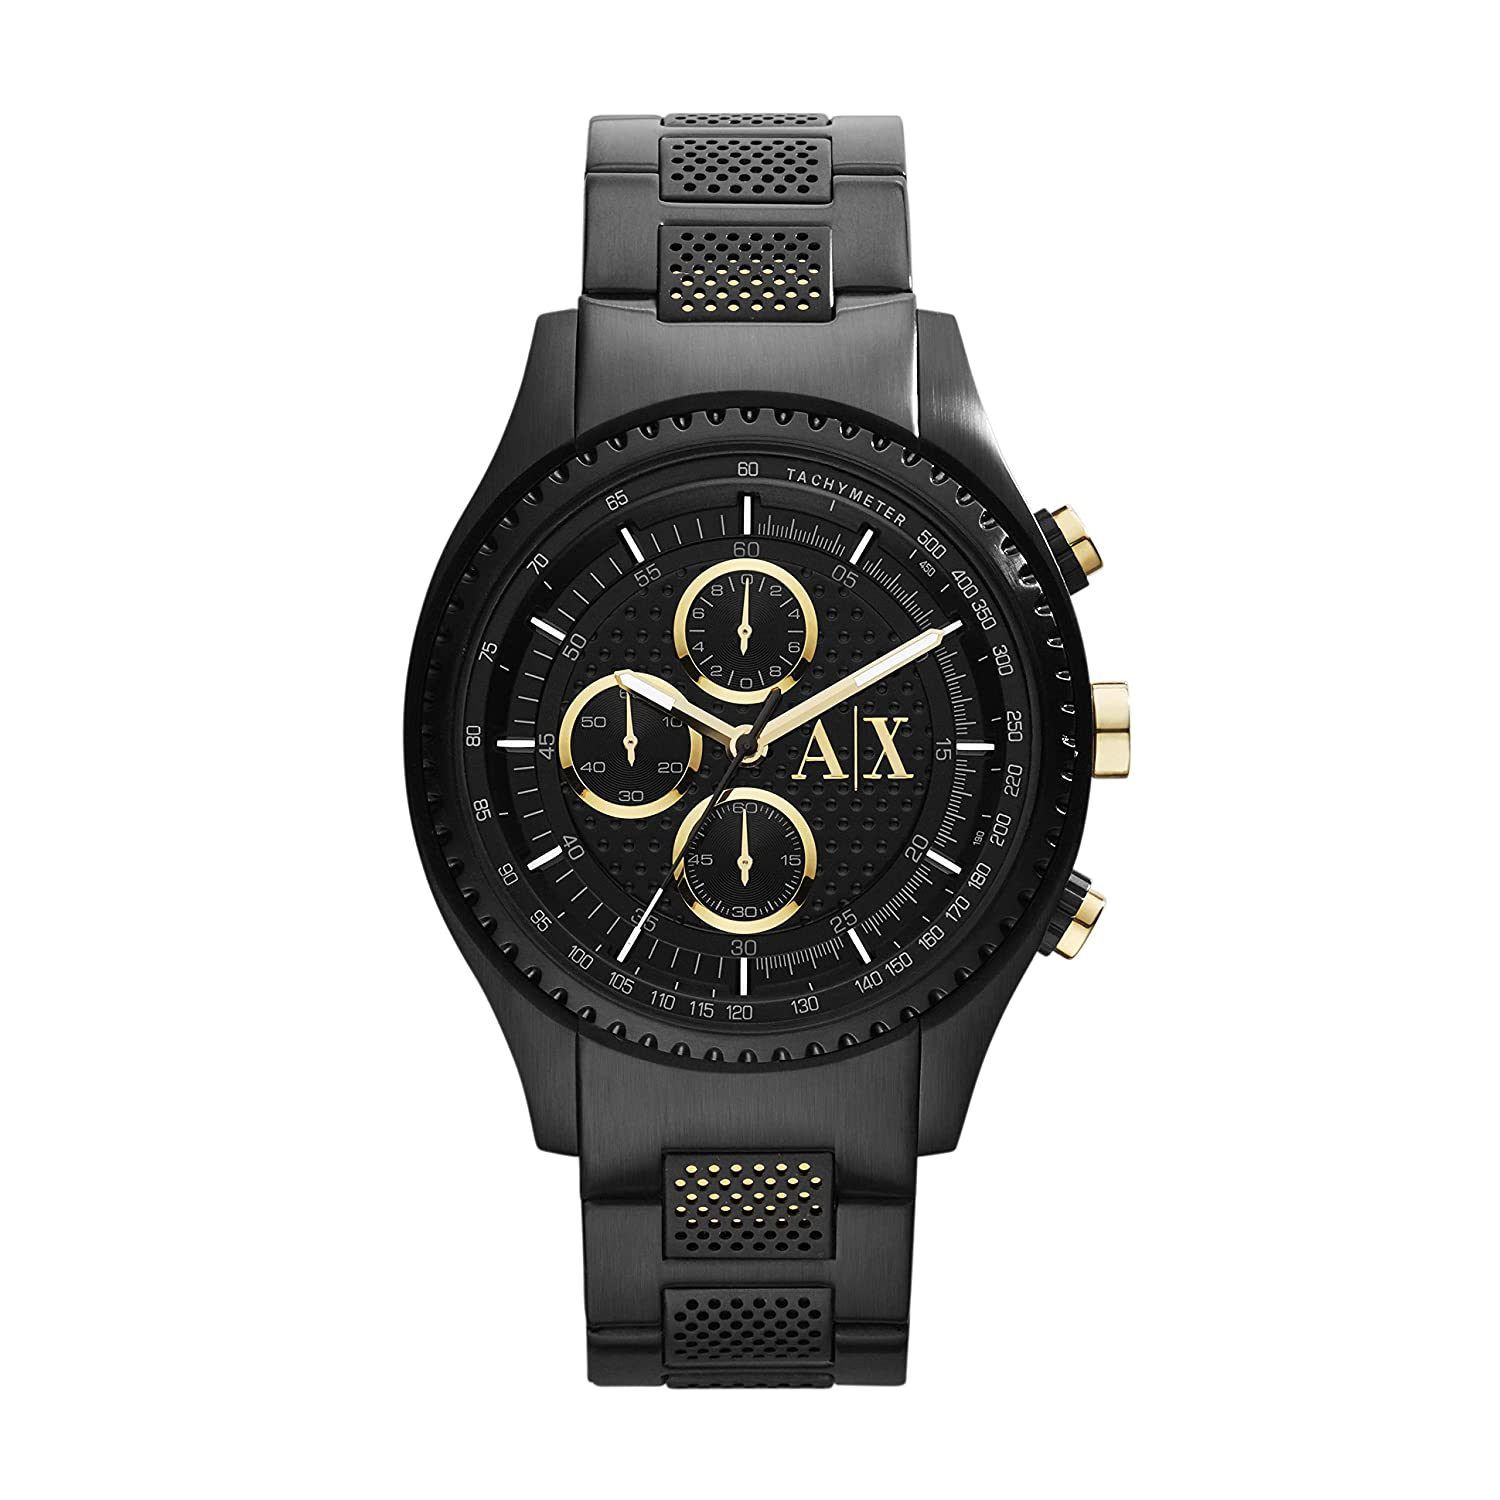 A X Men s Black Stainless Steel Watch AX1604